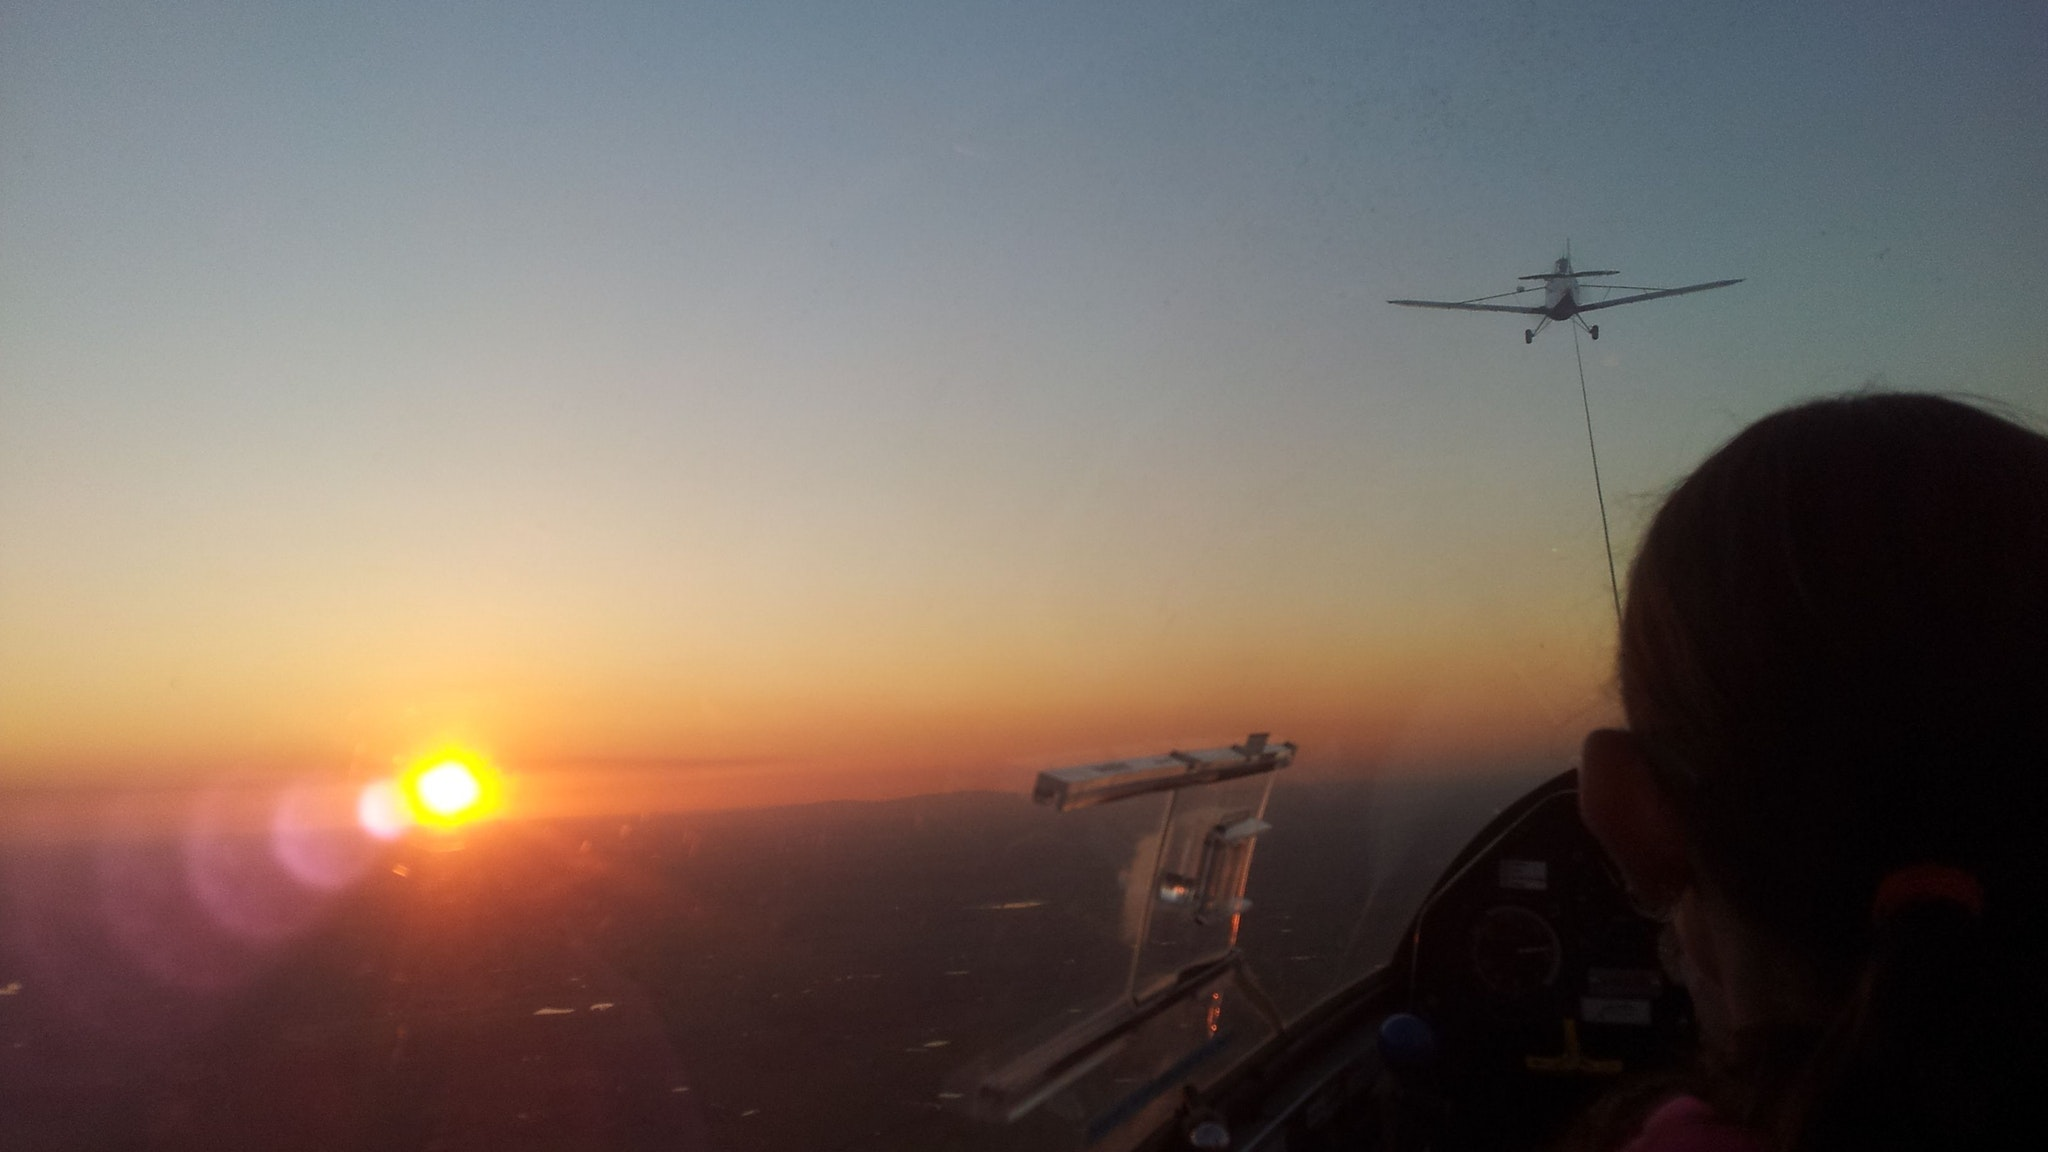 Sunset While Gliding